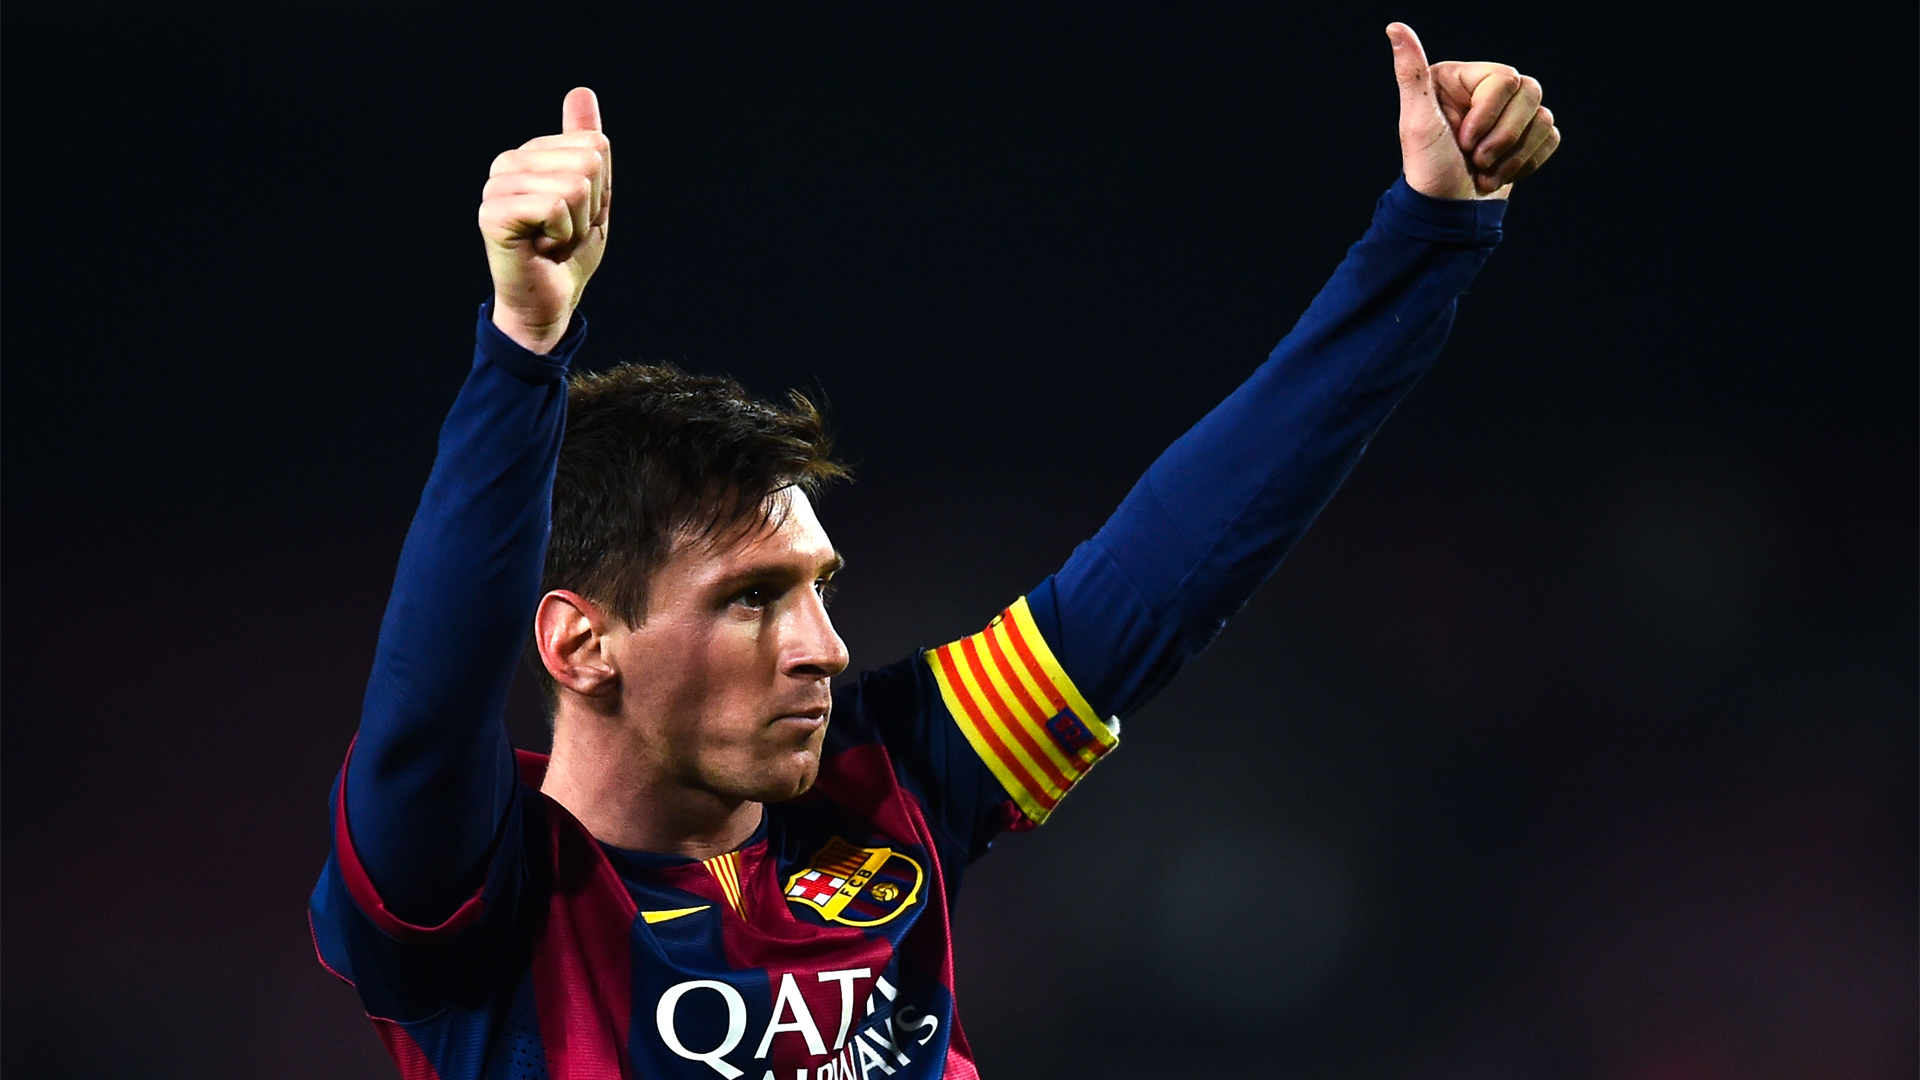 Lionel Messi Wallpapers HD download Wallpapers Backgrounds 1920x1080